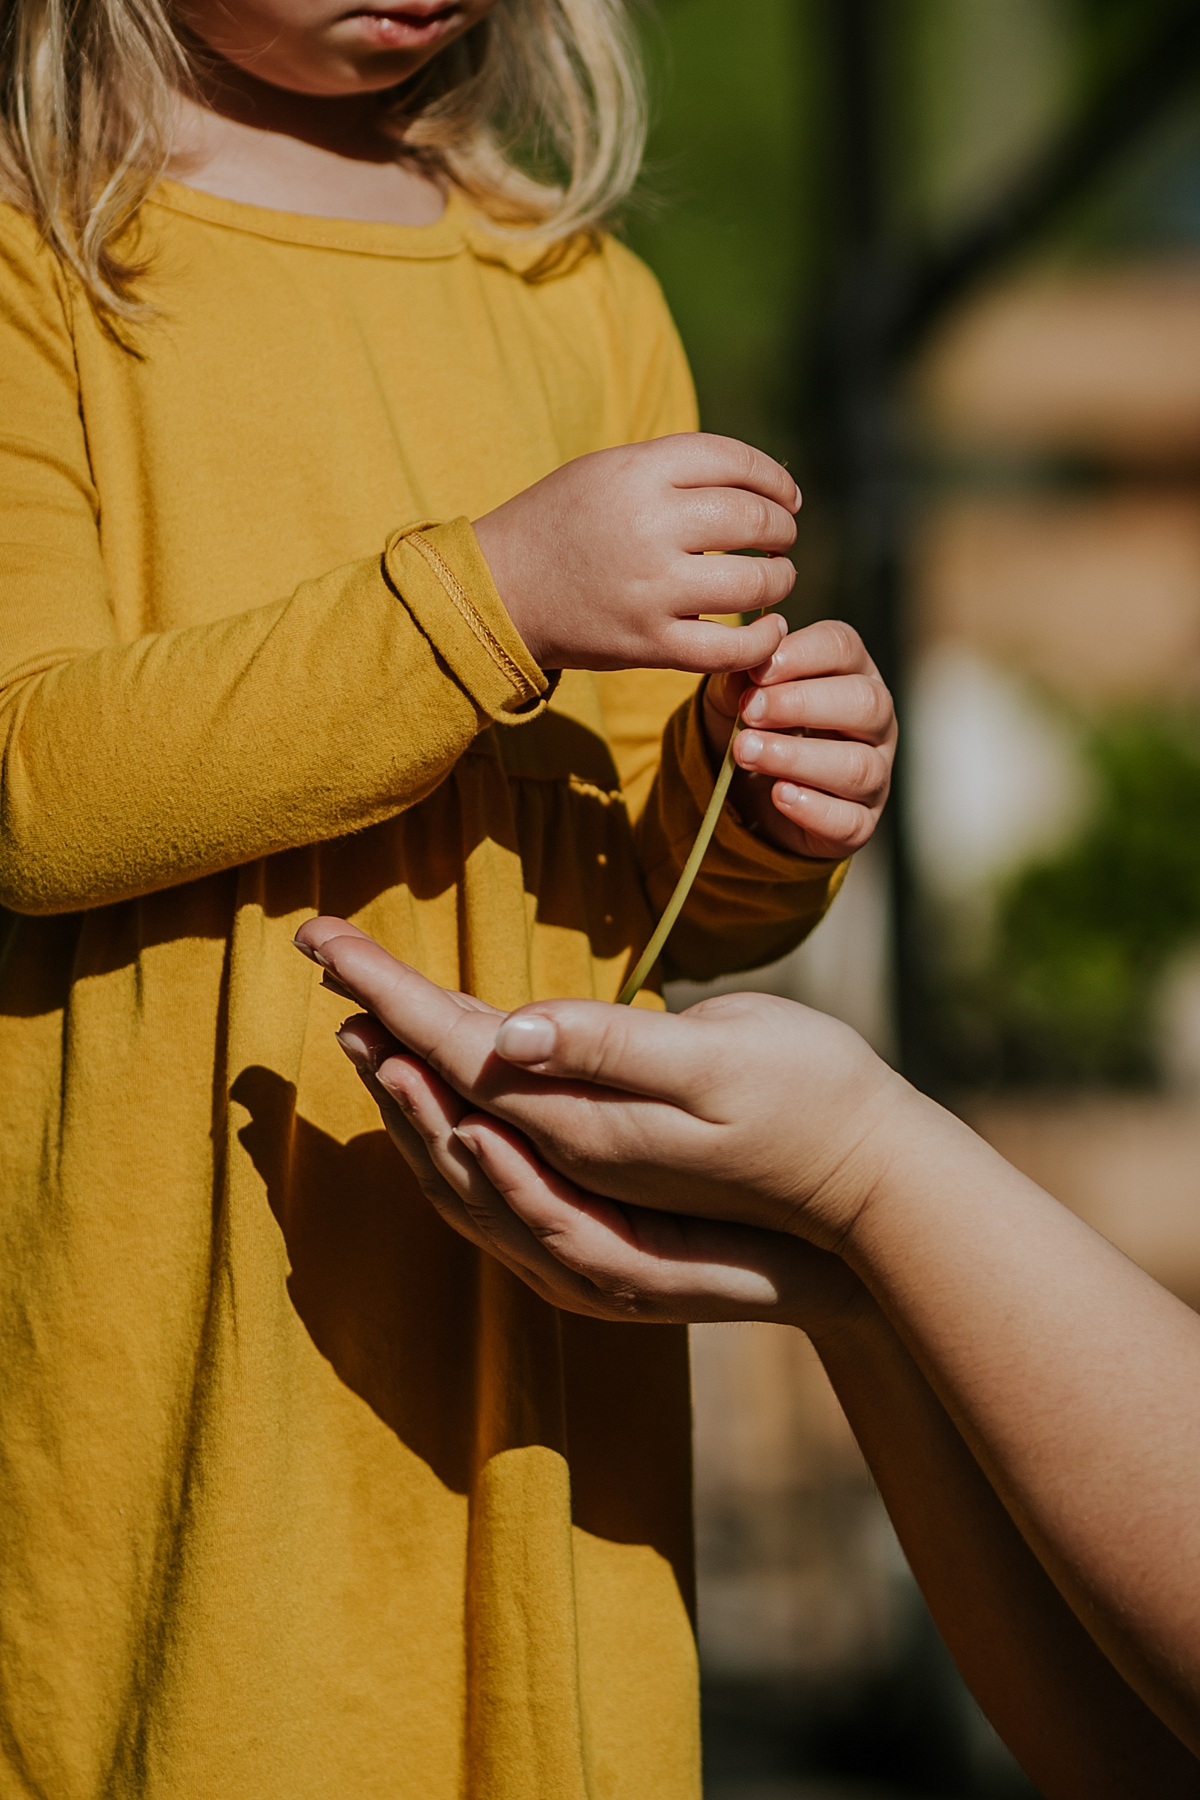 Orange County family photographer. Photo of mom reaching out to daughter for the flowers she is picking during in home family photo session in Long Beach, CA